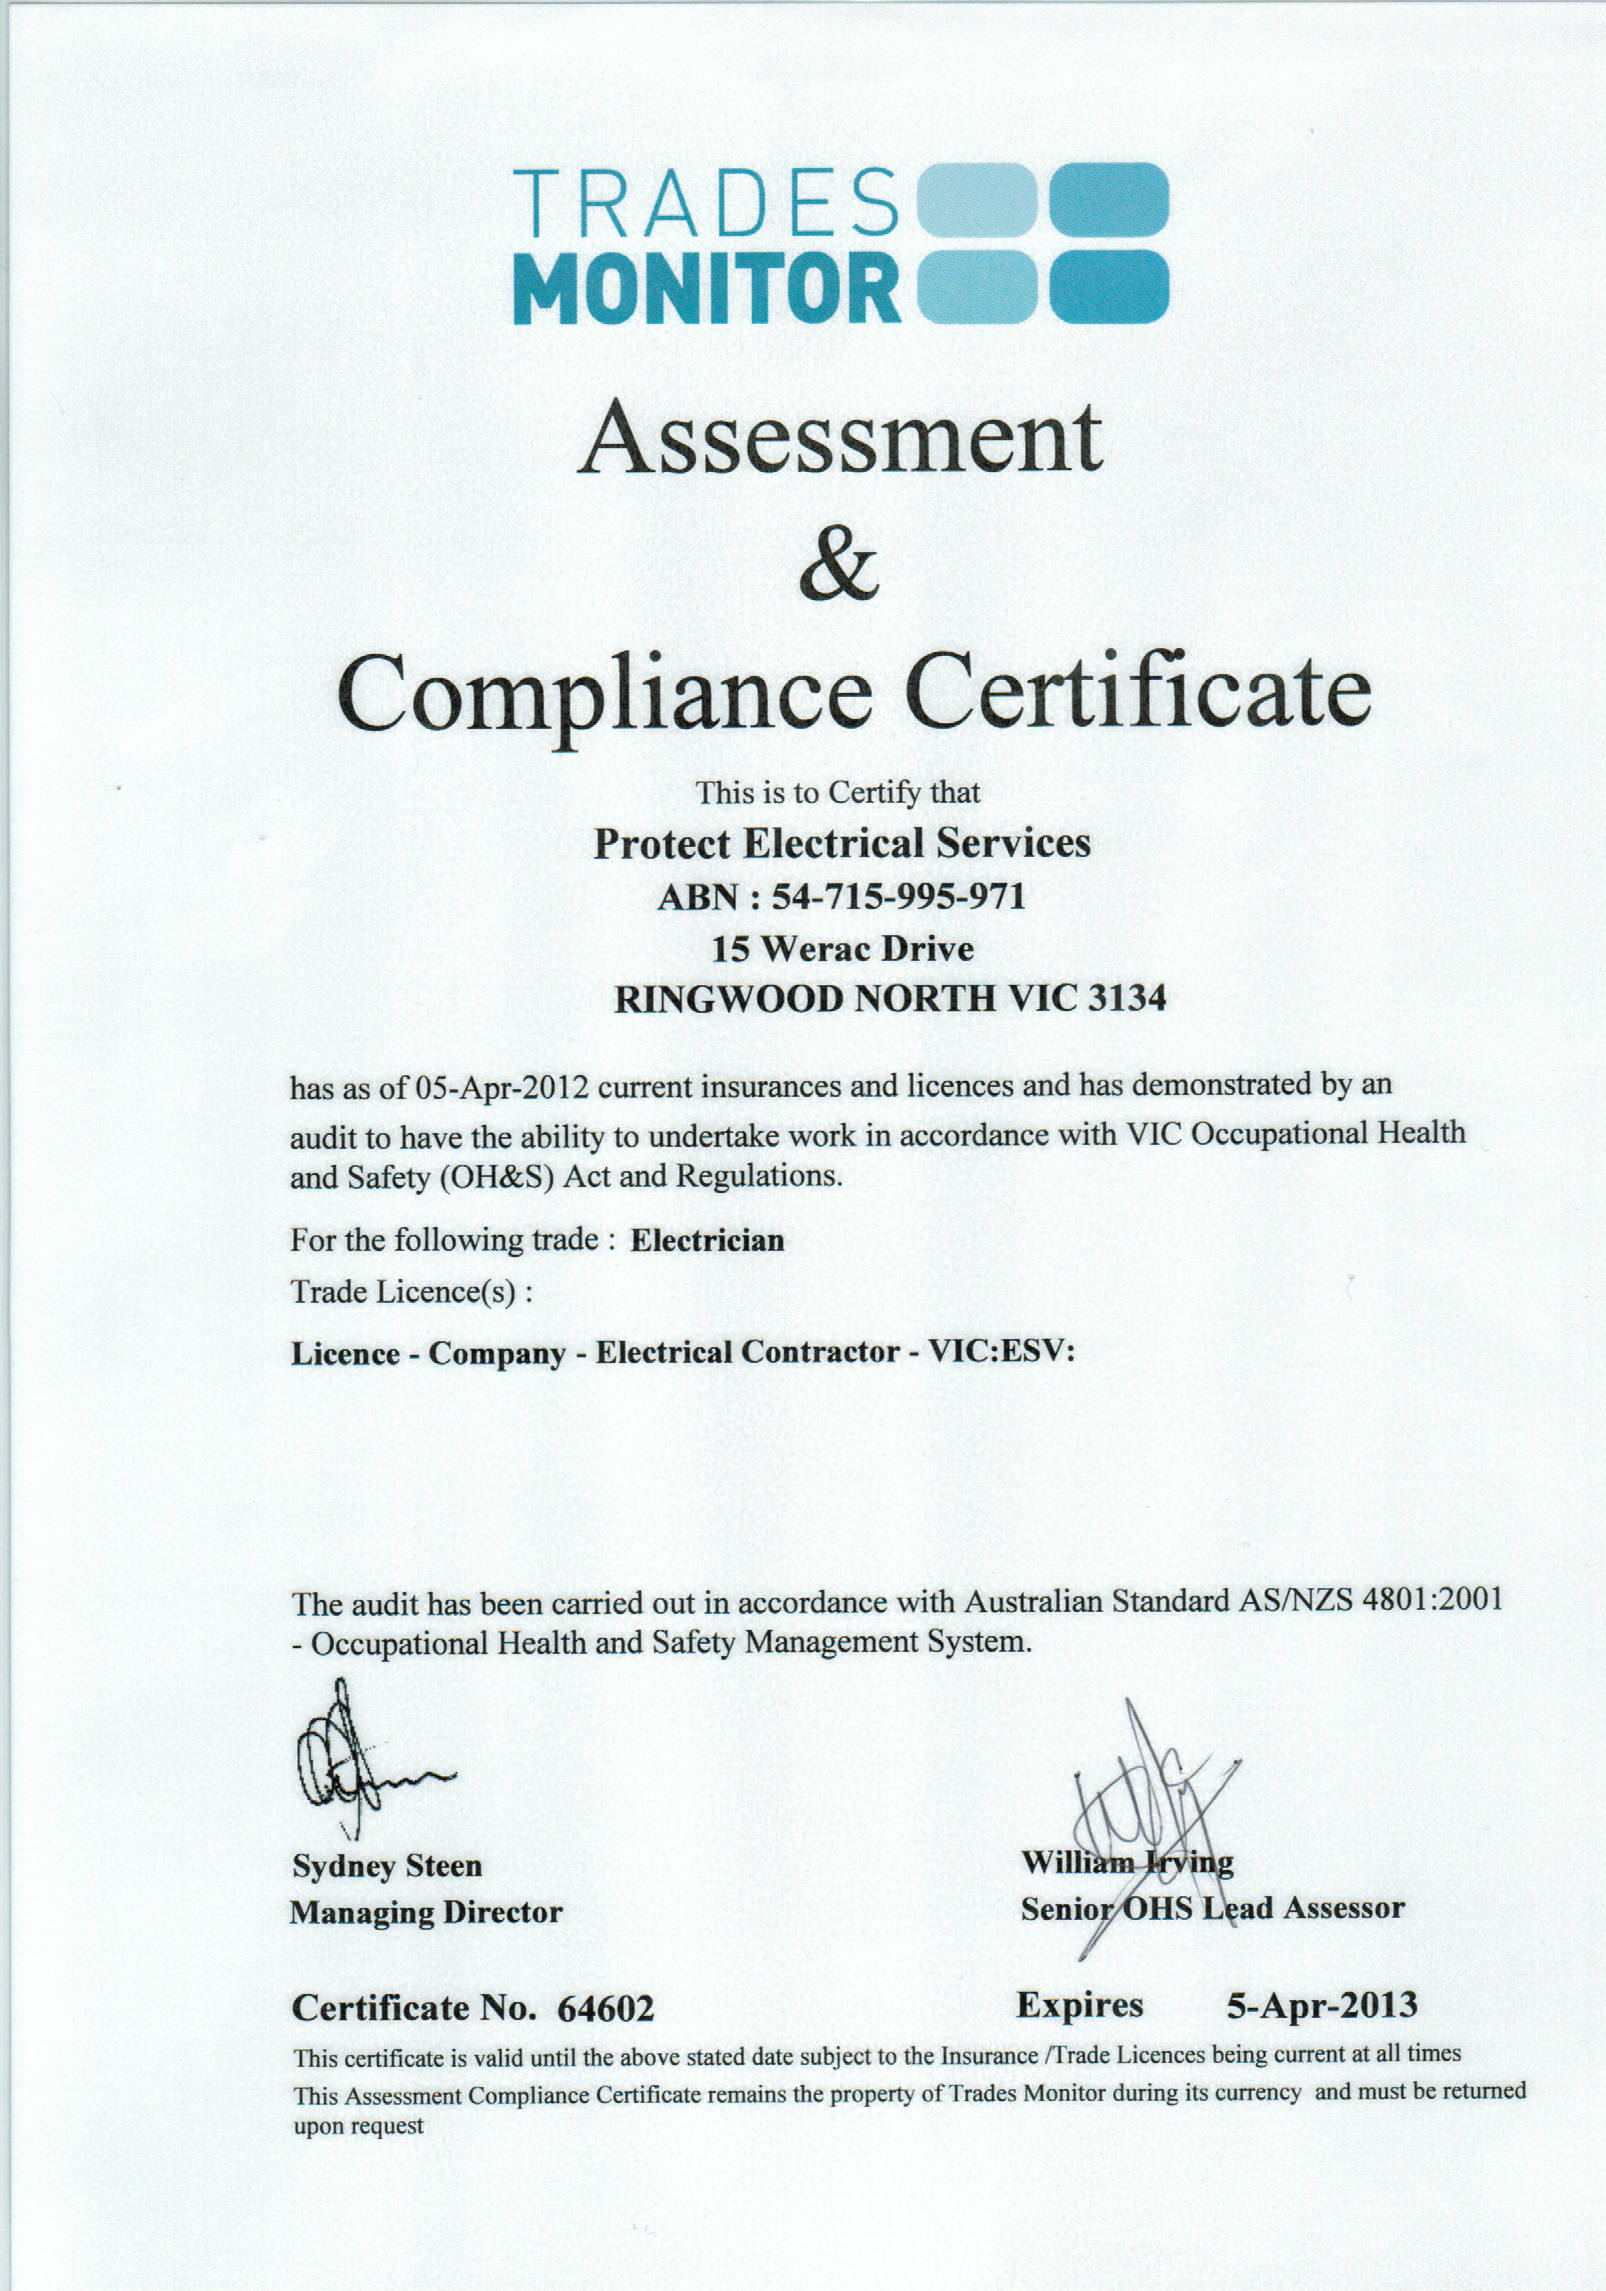 Compliance Certificate Protect Electrical Services 0412 301 275